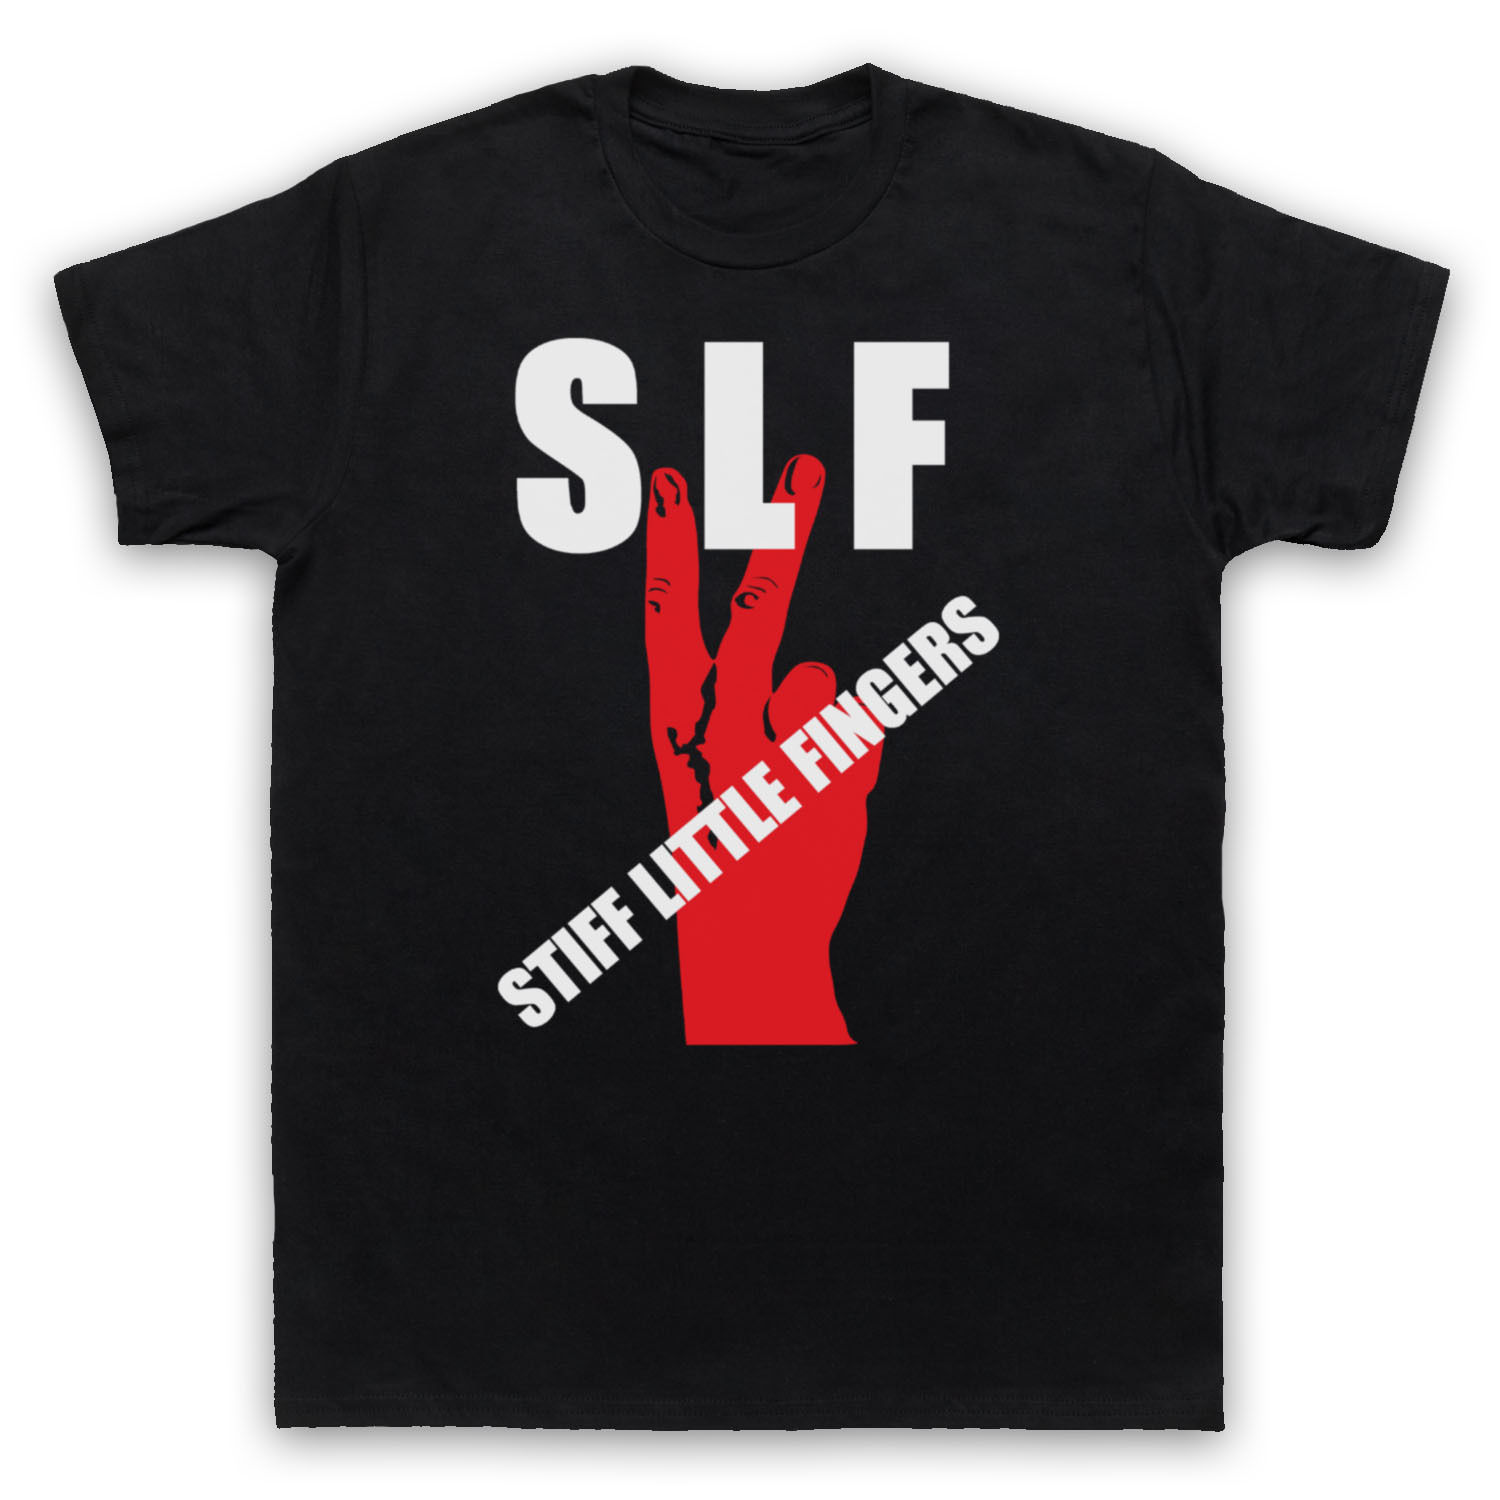 SLF IRISH PUNK STIFF LITTLE FINGERS UNOFFICIAL T-SHIRT MENS LADIES KIDS SIZE COL Men T-Shirt Cotton 100% top tee